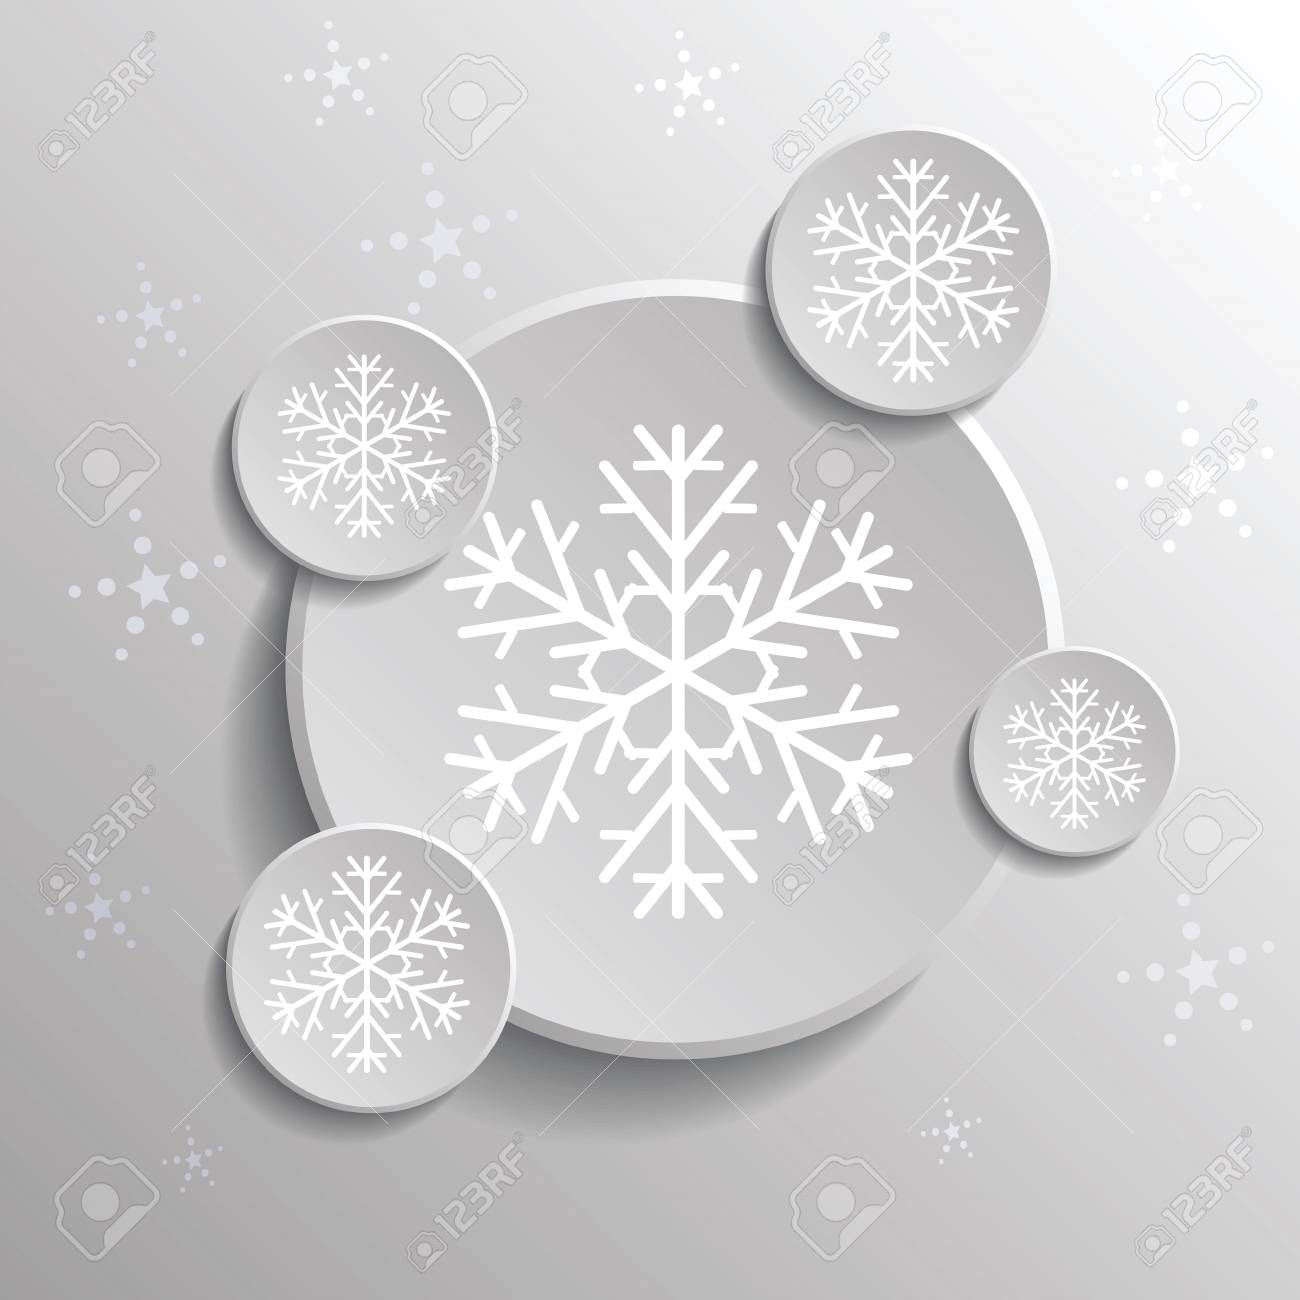 colorful illustration with abstract snowflakes  for your design Stock Vector - 22910741